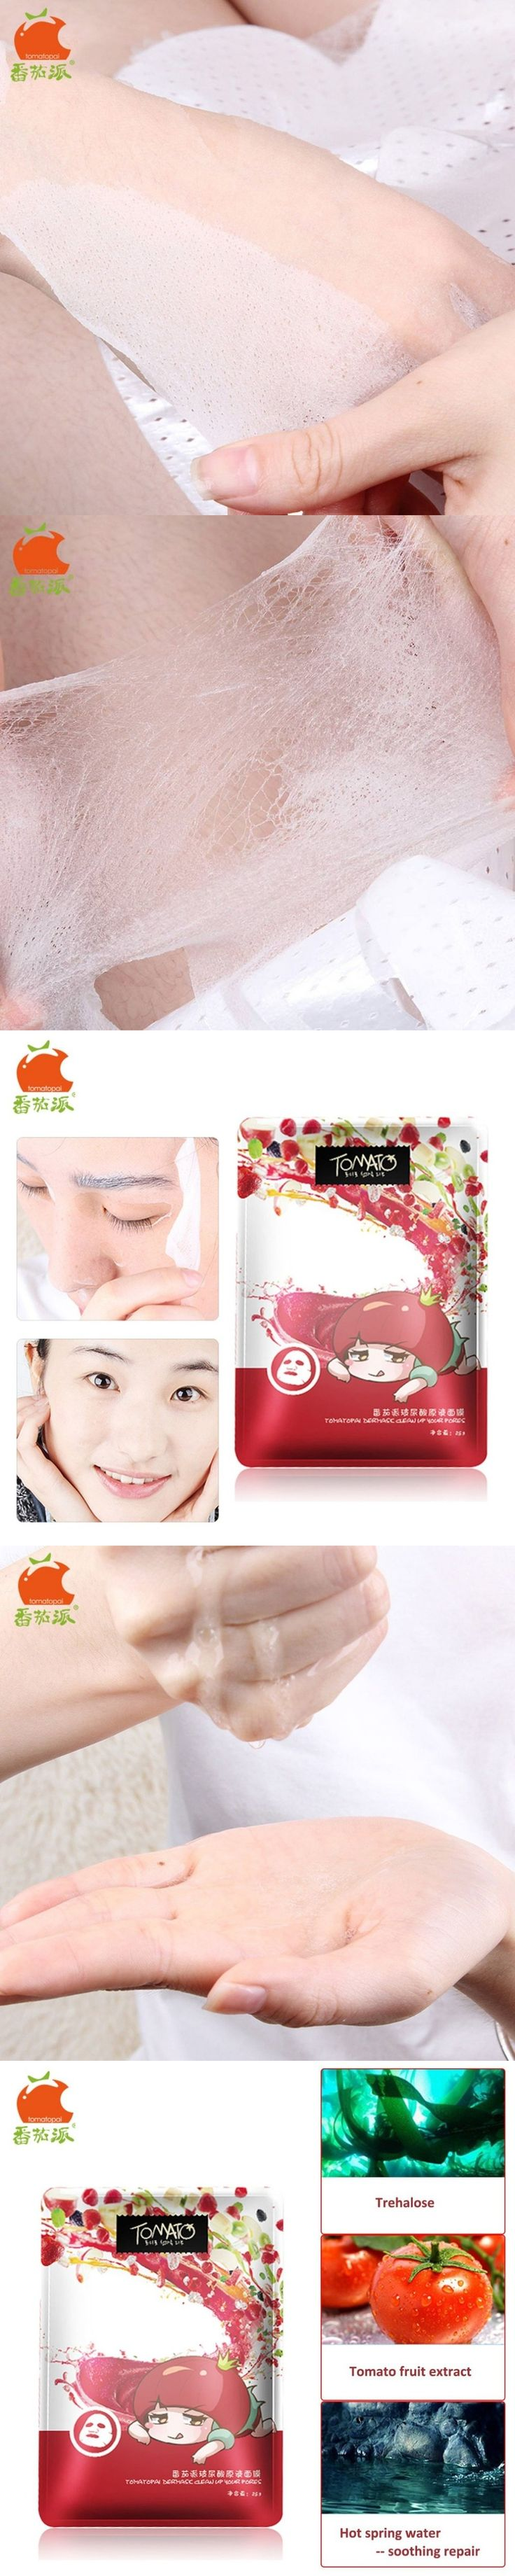 TOMATO PIE 30ML Natural Hyaluronic Acid Hydrating Facial Mask Moisturizing Whitening Oil Control Firming Face Masks Skin Care